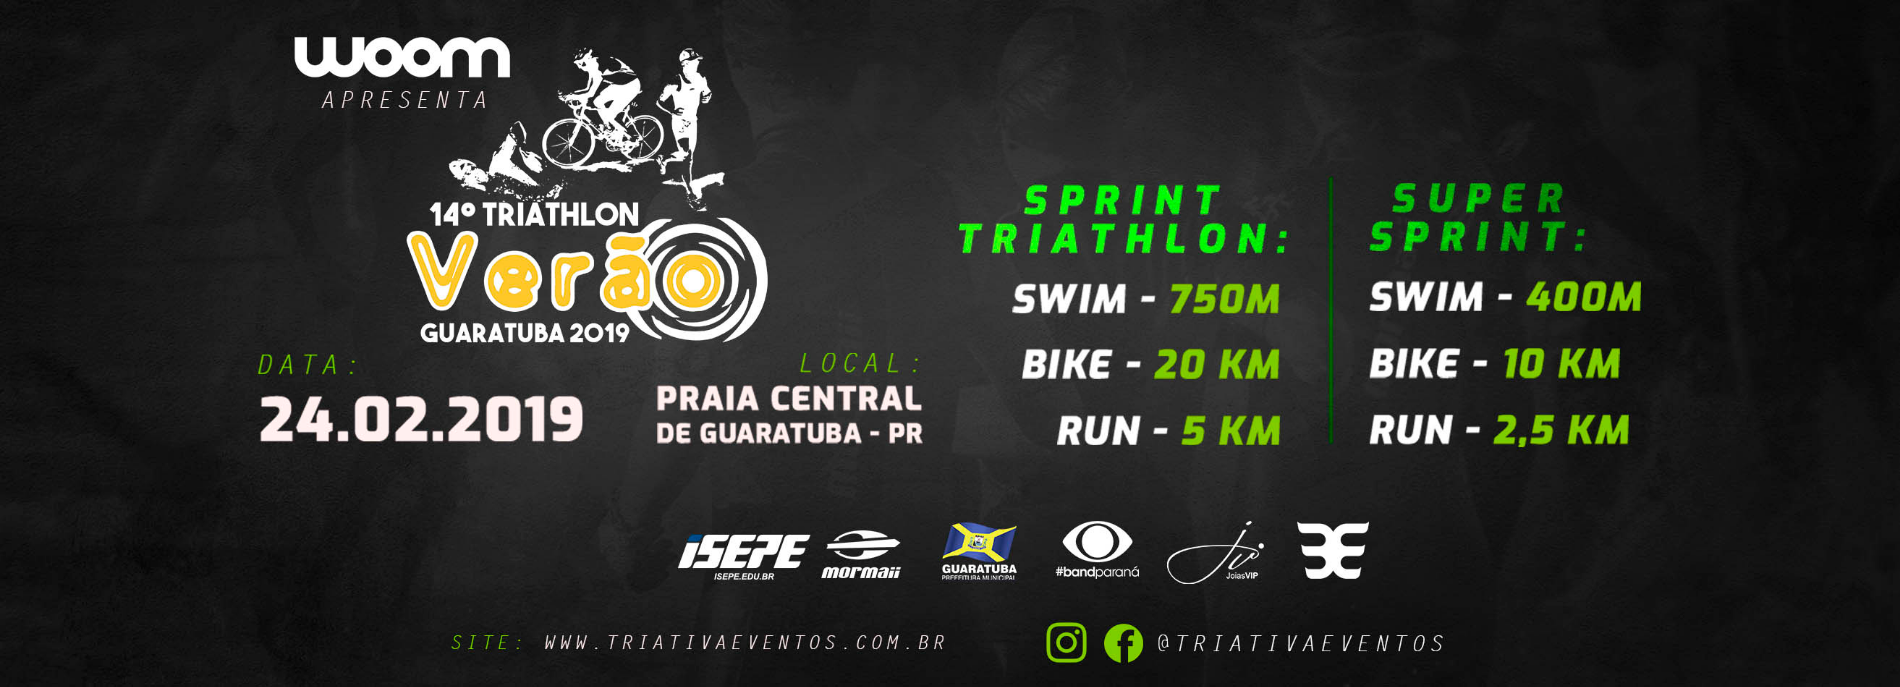 TRIATHLON DE VERÃO - DUATHLON - TRAVESSIA - GUARATUBA - PR